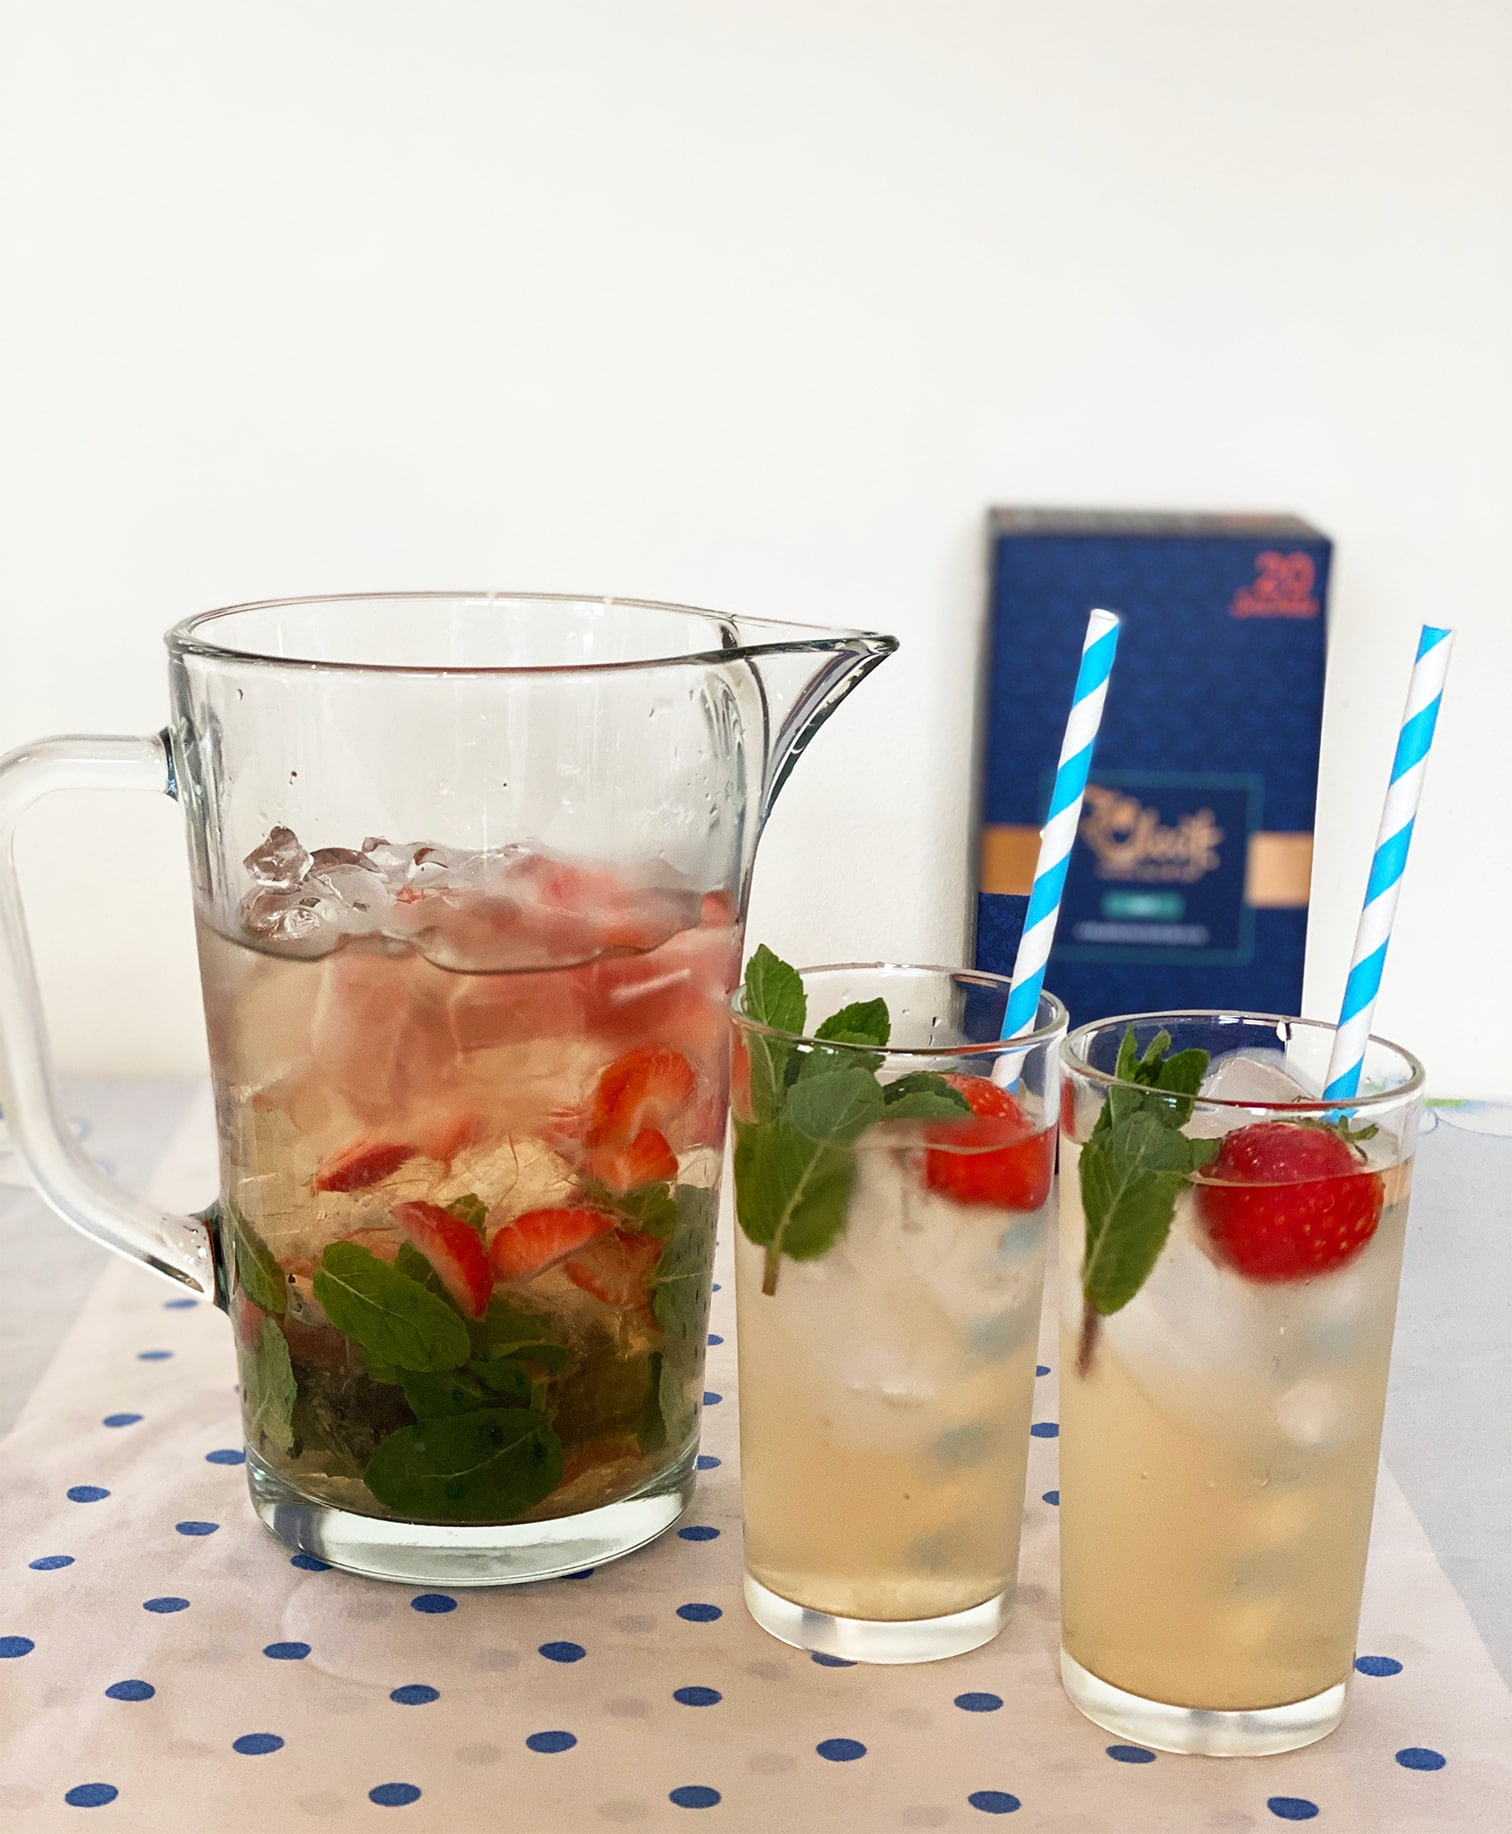 Strawberry and Mint Olive Iced Tea